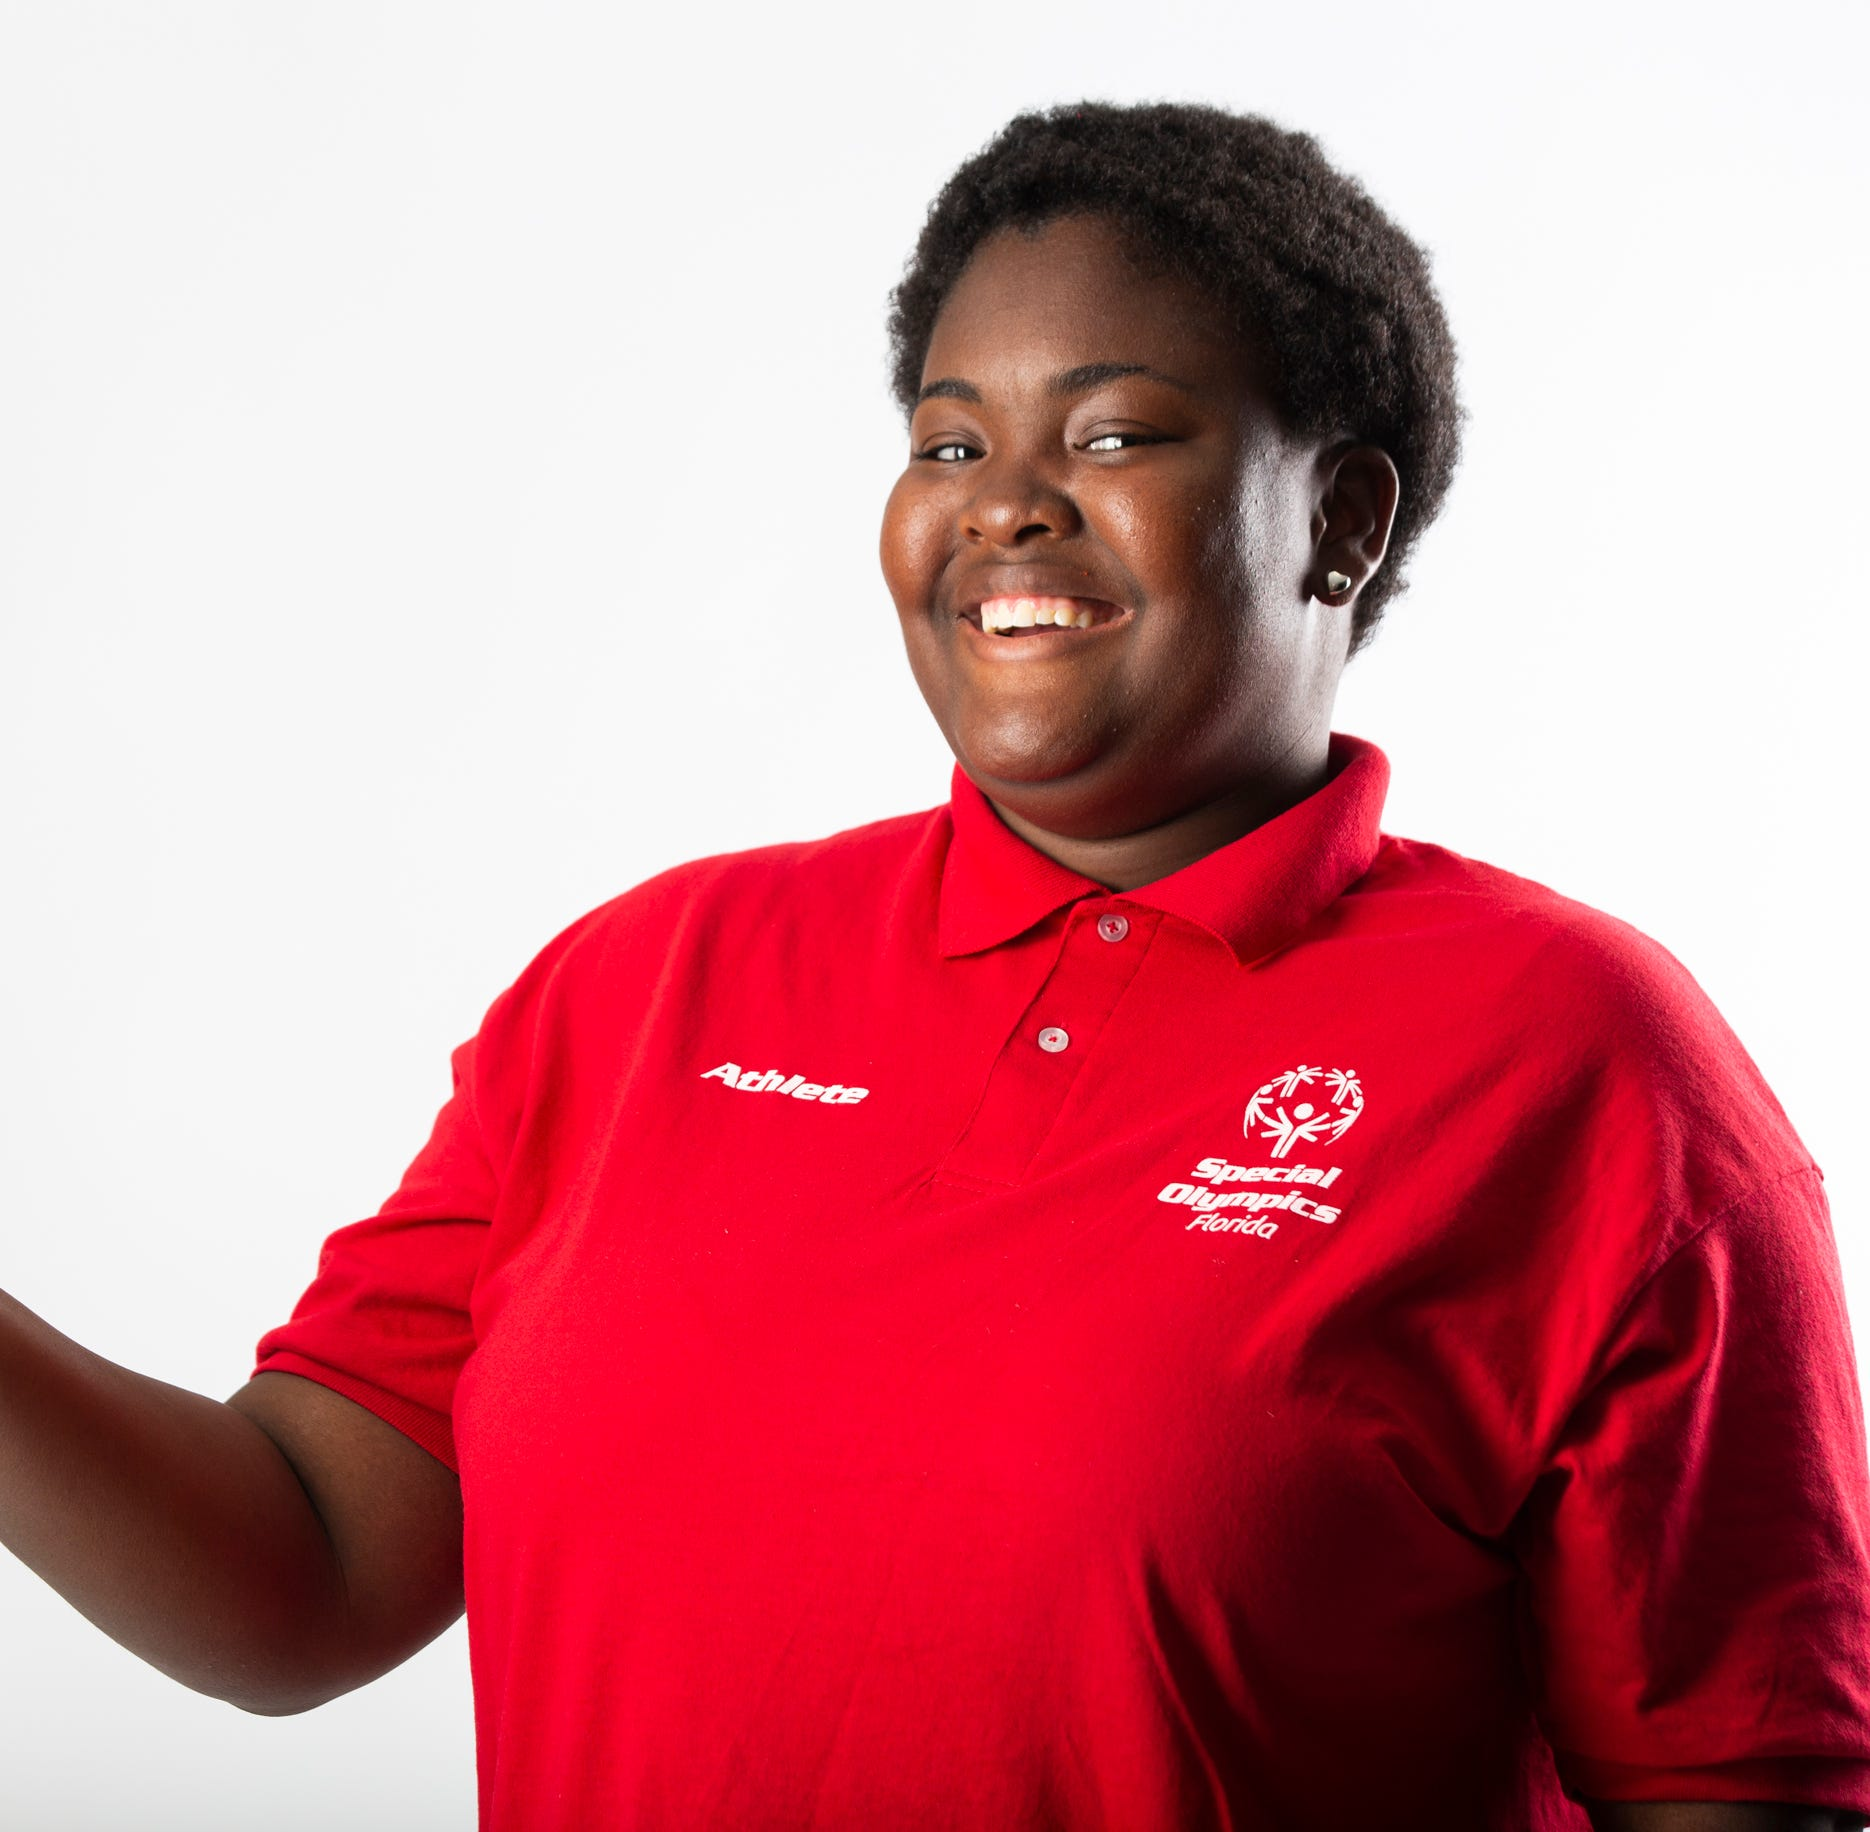 Southwest Florida Sports Awards Special Olympic Athlete of the Year Finalists